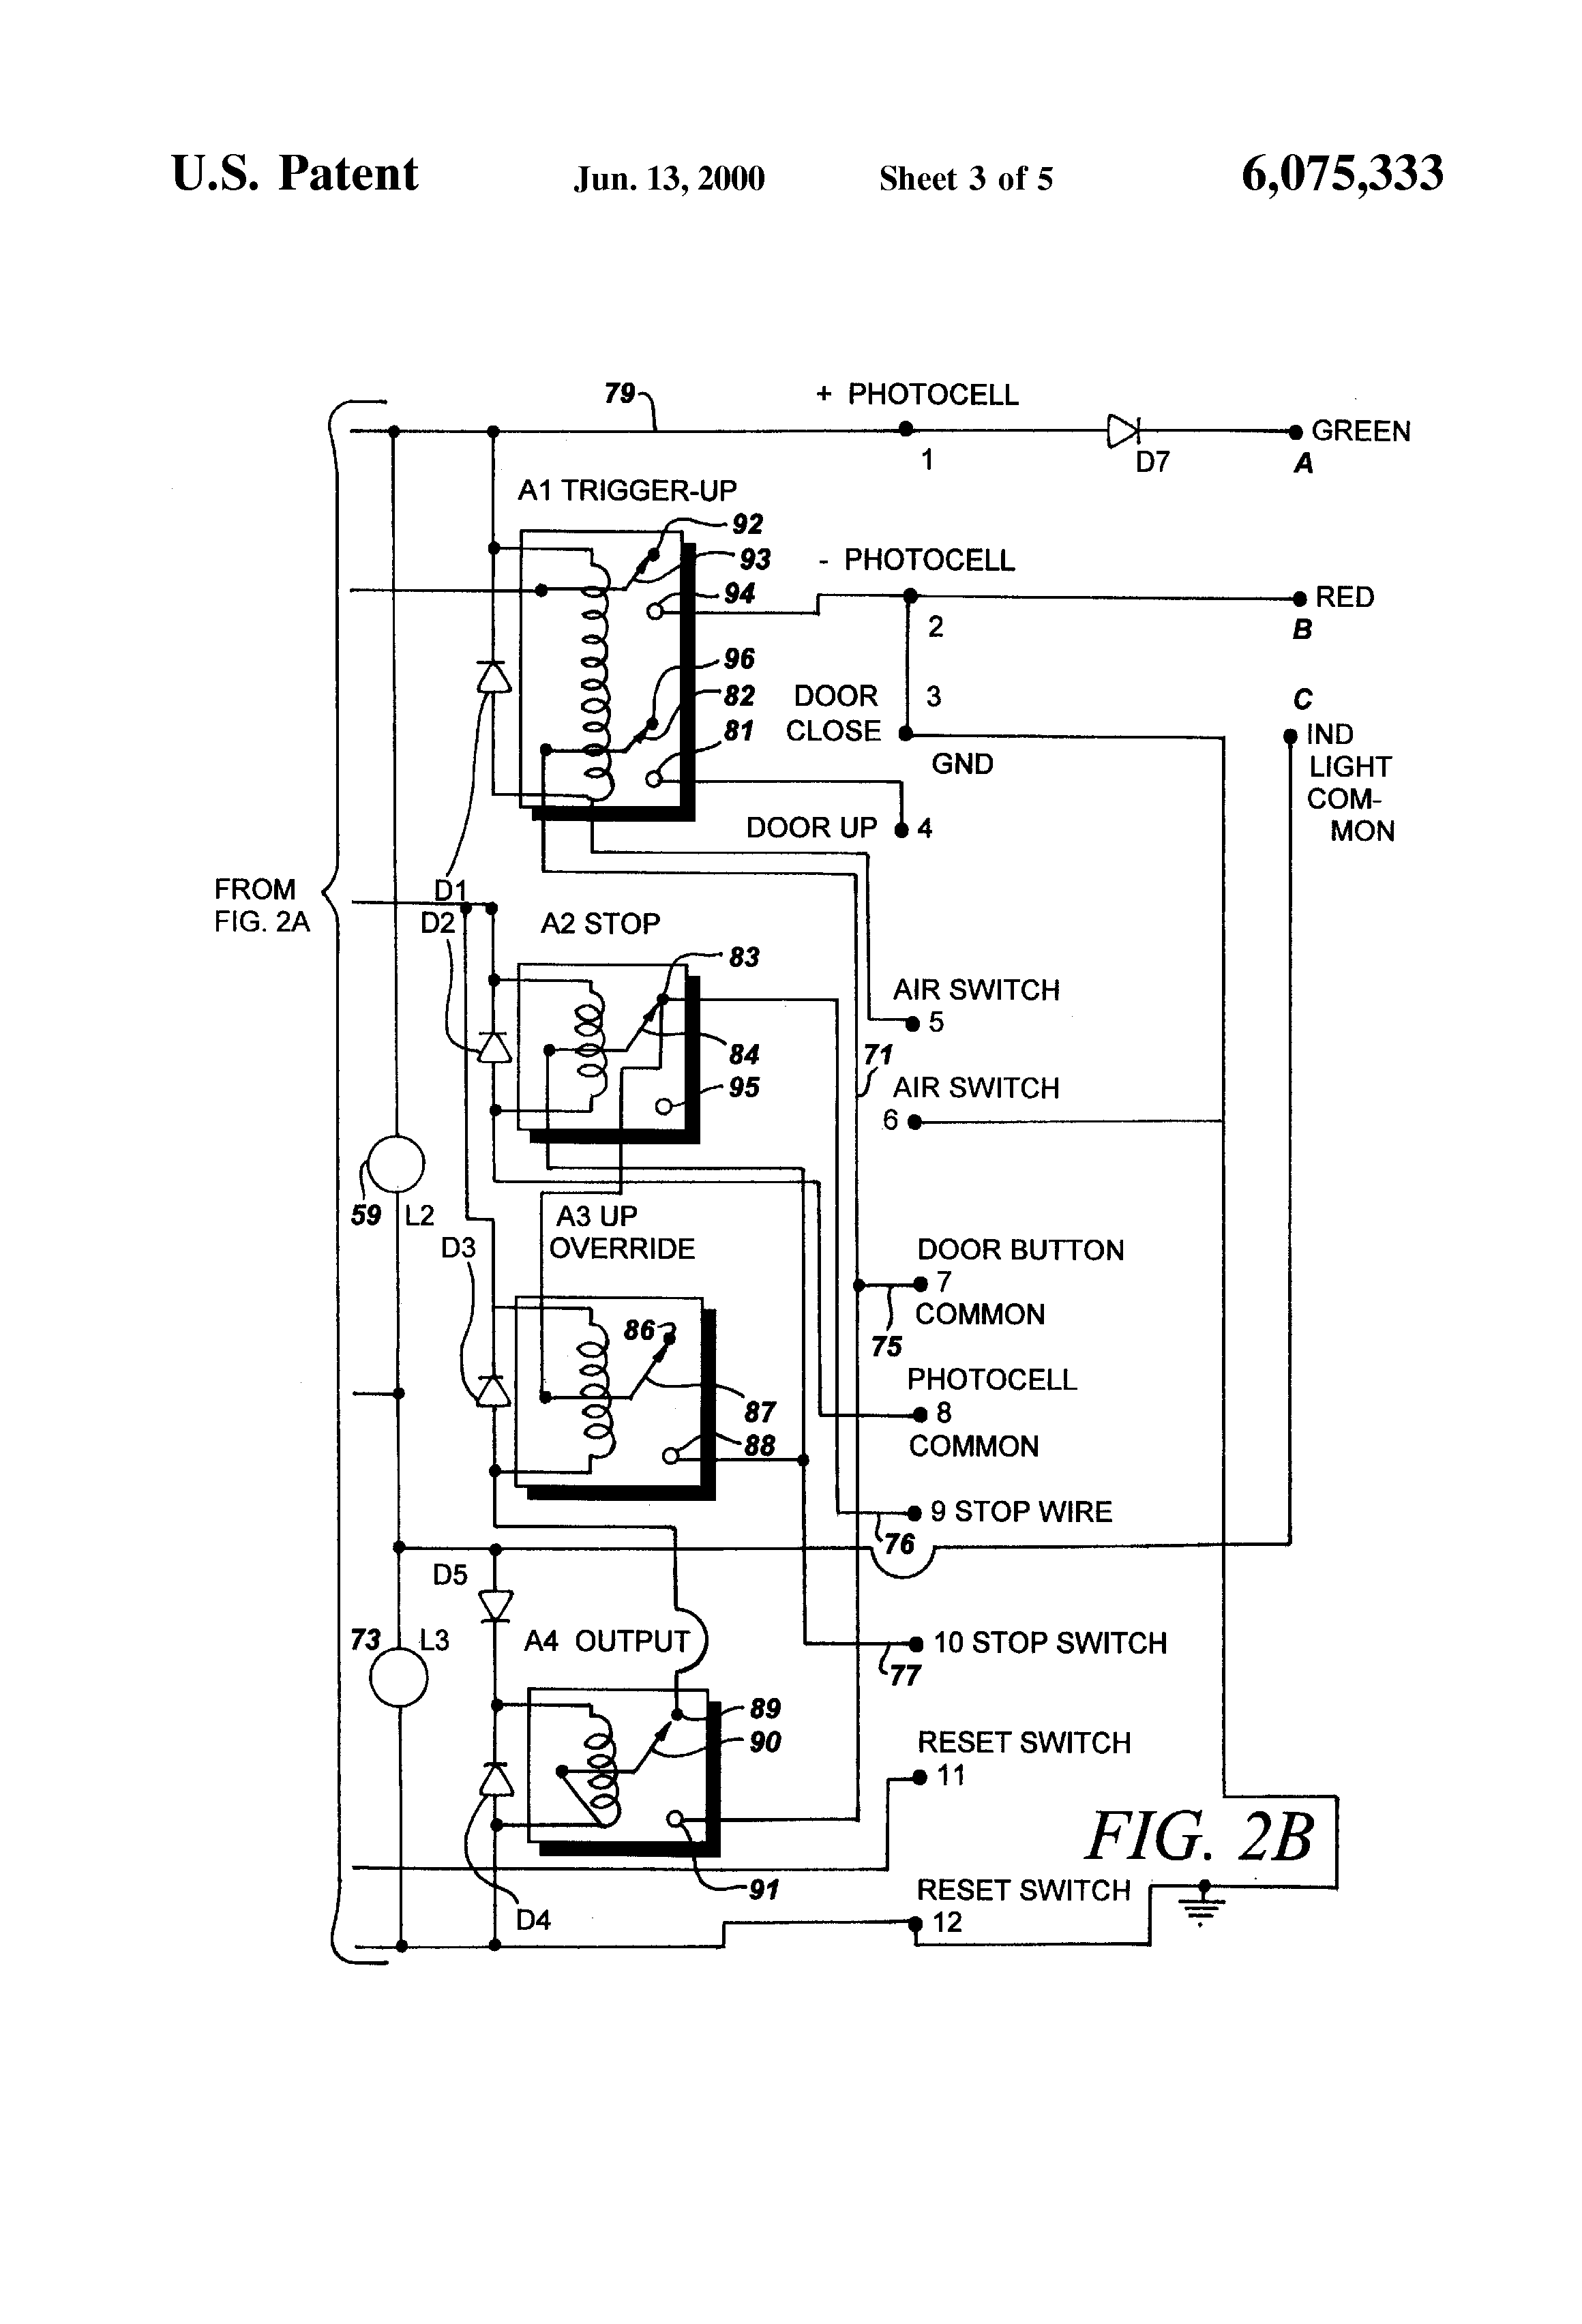 US6075333 3 patent us6075333 kit for retrofitting manually operated electric telectron rd14-6 wiring diagram at crackthecode.co